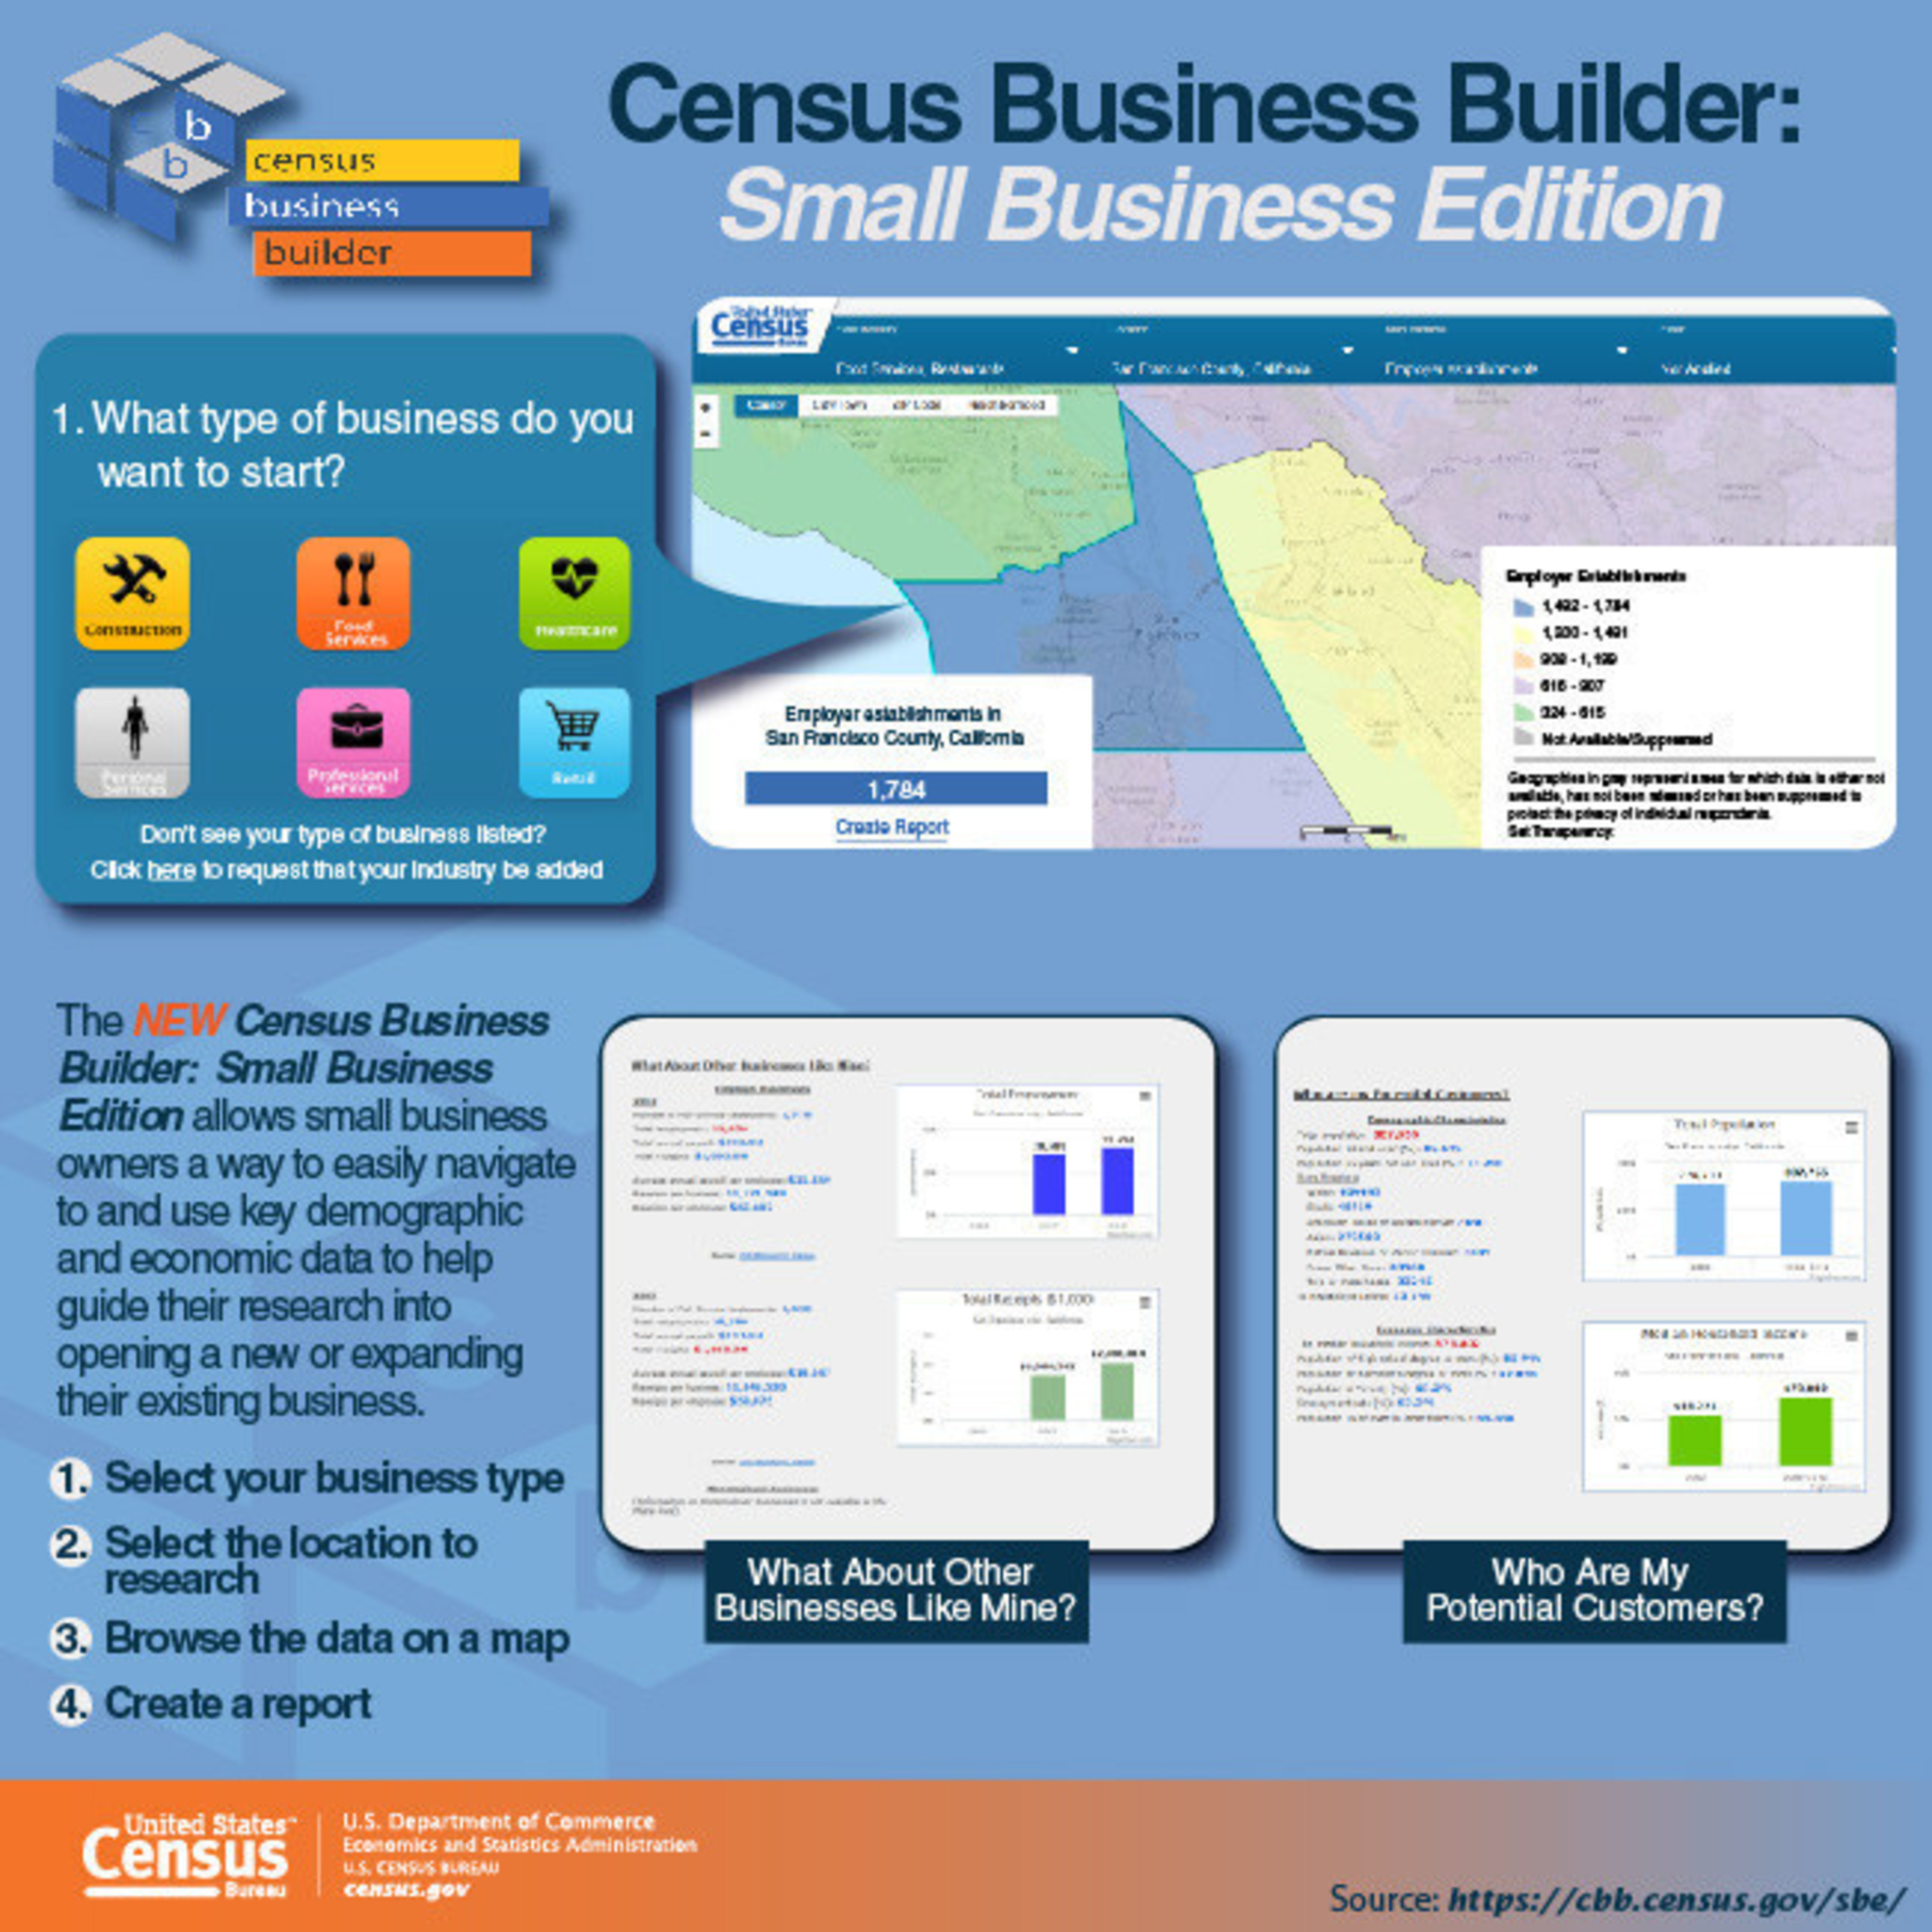 The Census Bureau released Census Business Builder: Small Business Edition, a new Web tool that allows business owners and entrepreneurs to navigate and use key demographic and economic data to help guide their research.